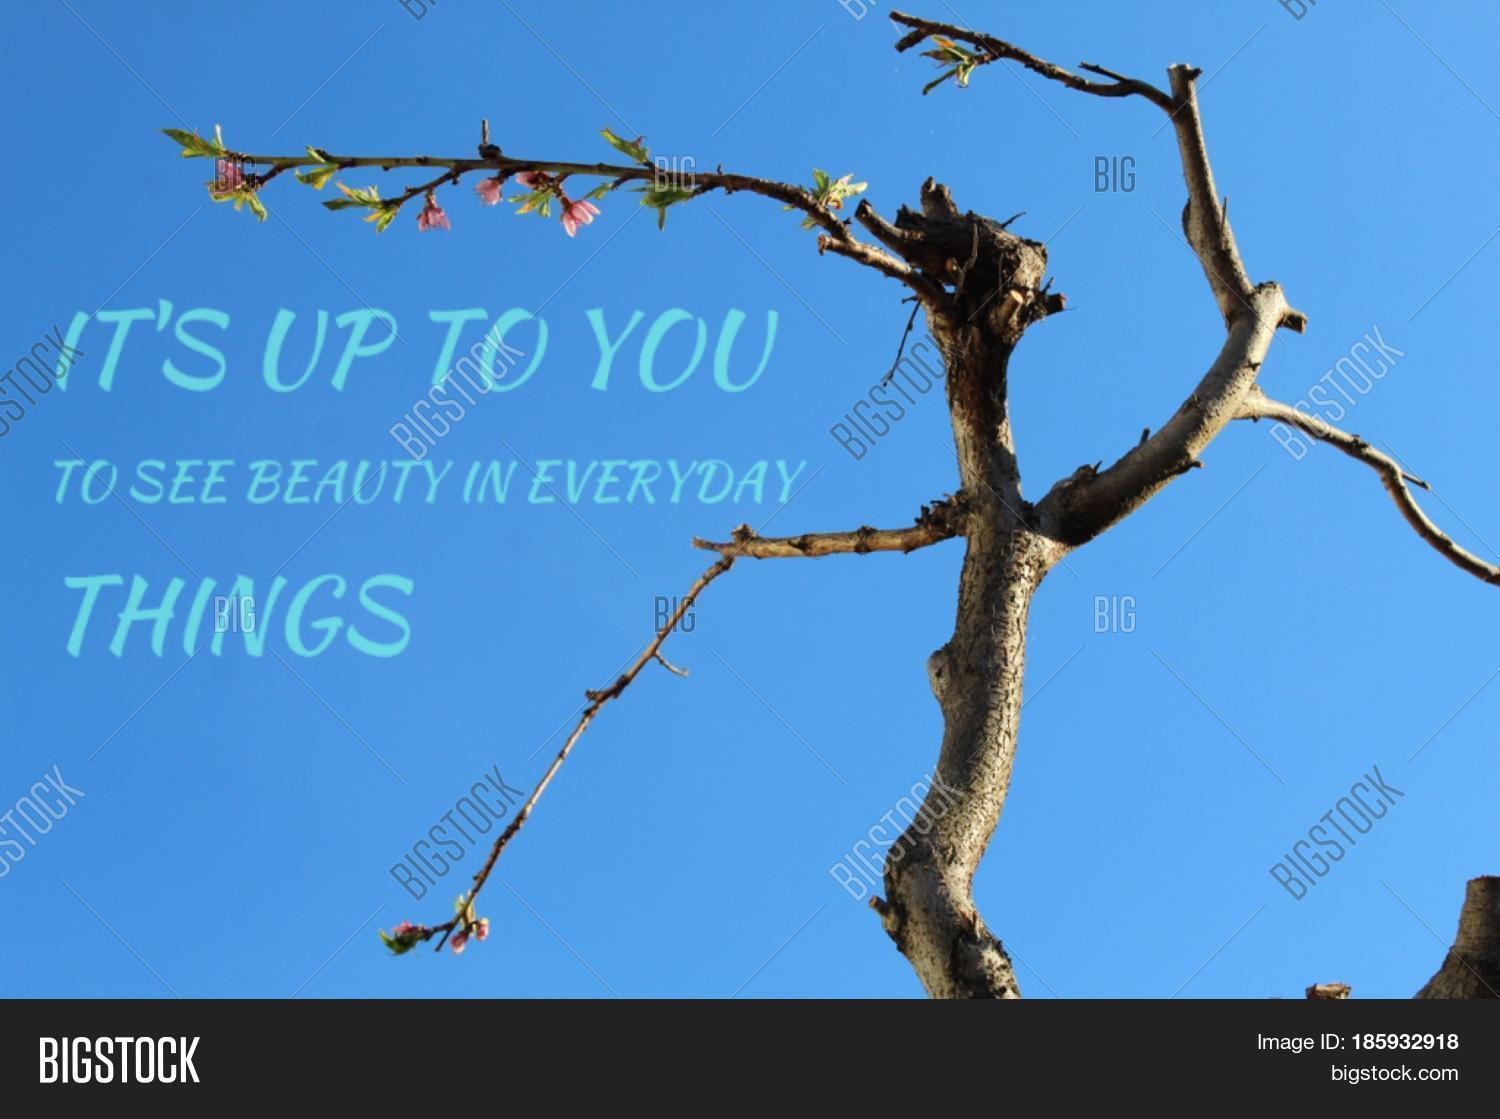 Inspirational quote on image photo free trial bigstock inspirational quote on clear blue sky with tree branches with small leaves and flowers blooming izmirmasajfo